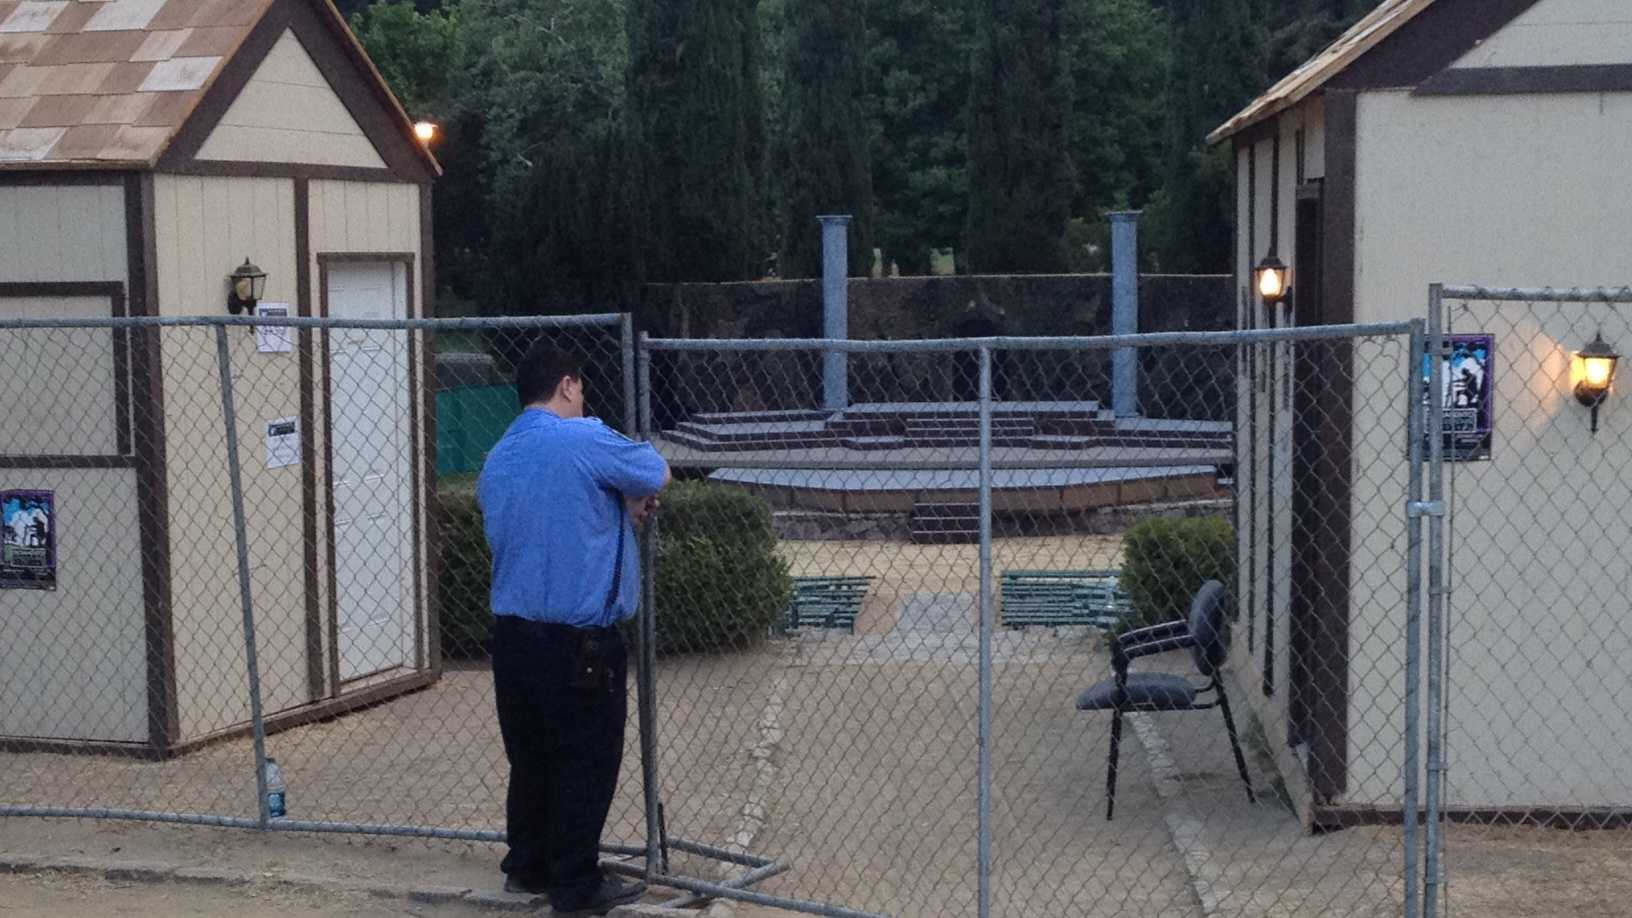 A guard secures a gate outside the Sacramento Shakespeare Festival.